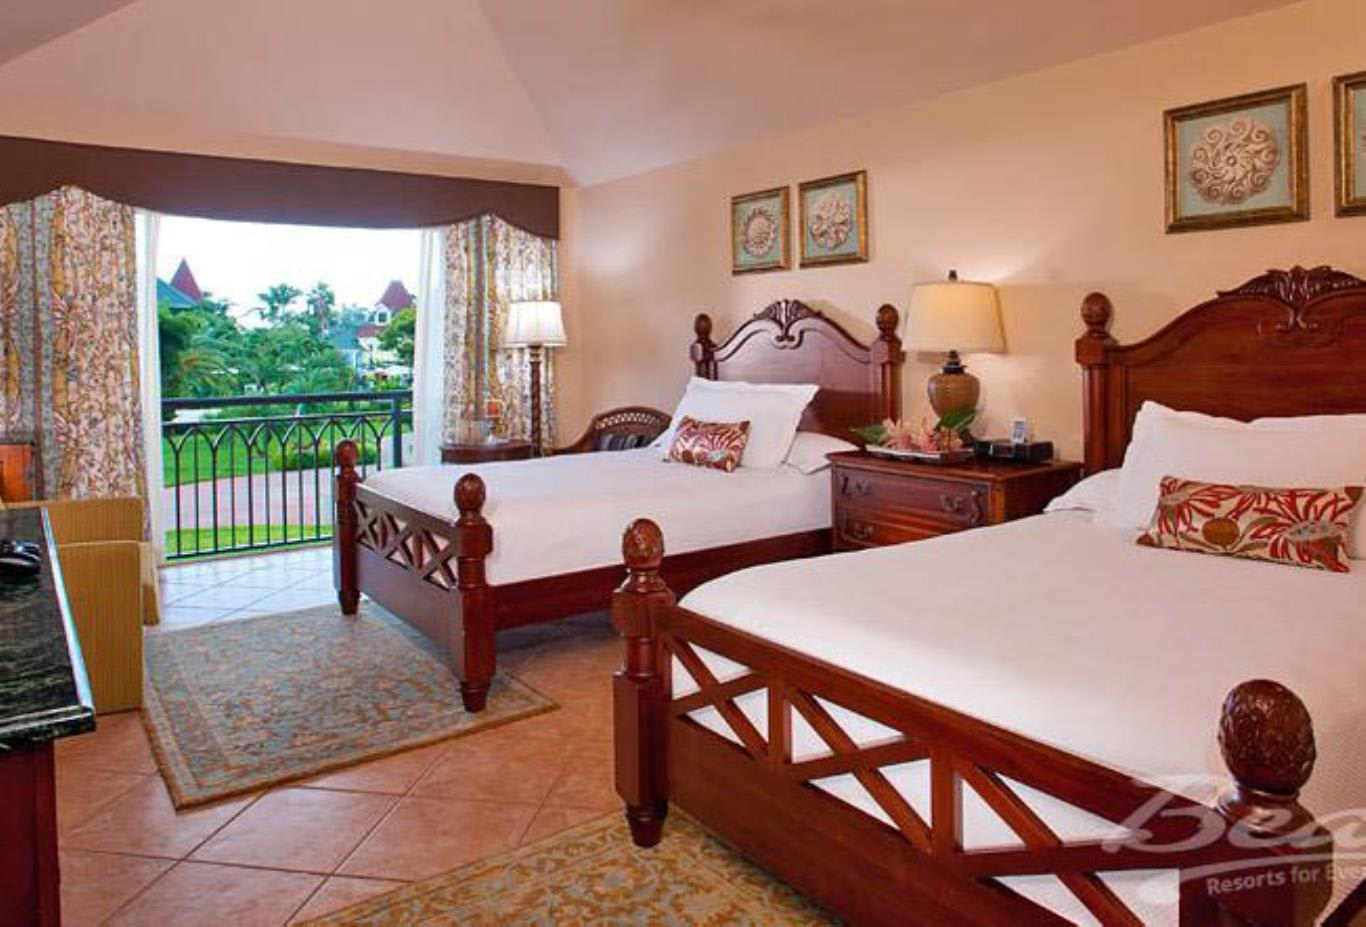 French Village Honeymoon Luxury Room - HFK,HFD